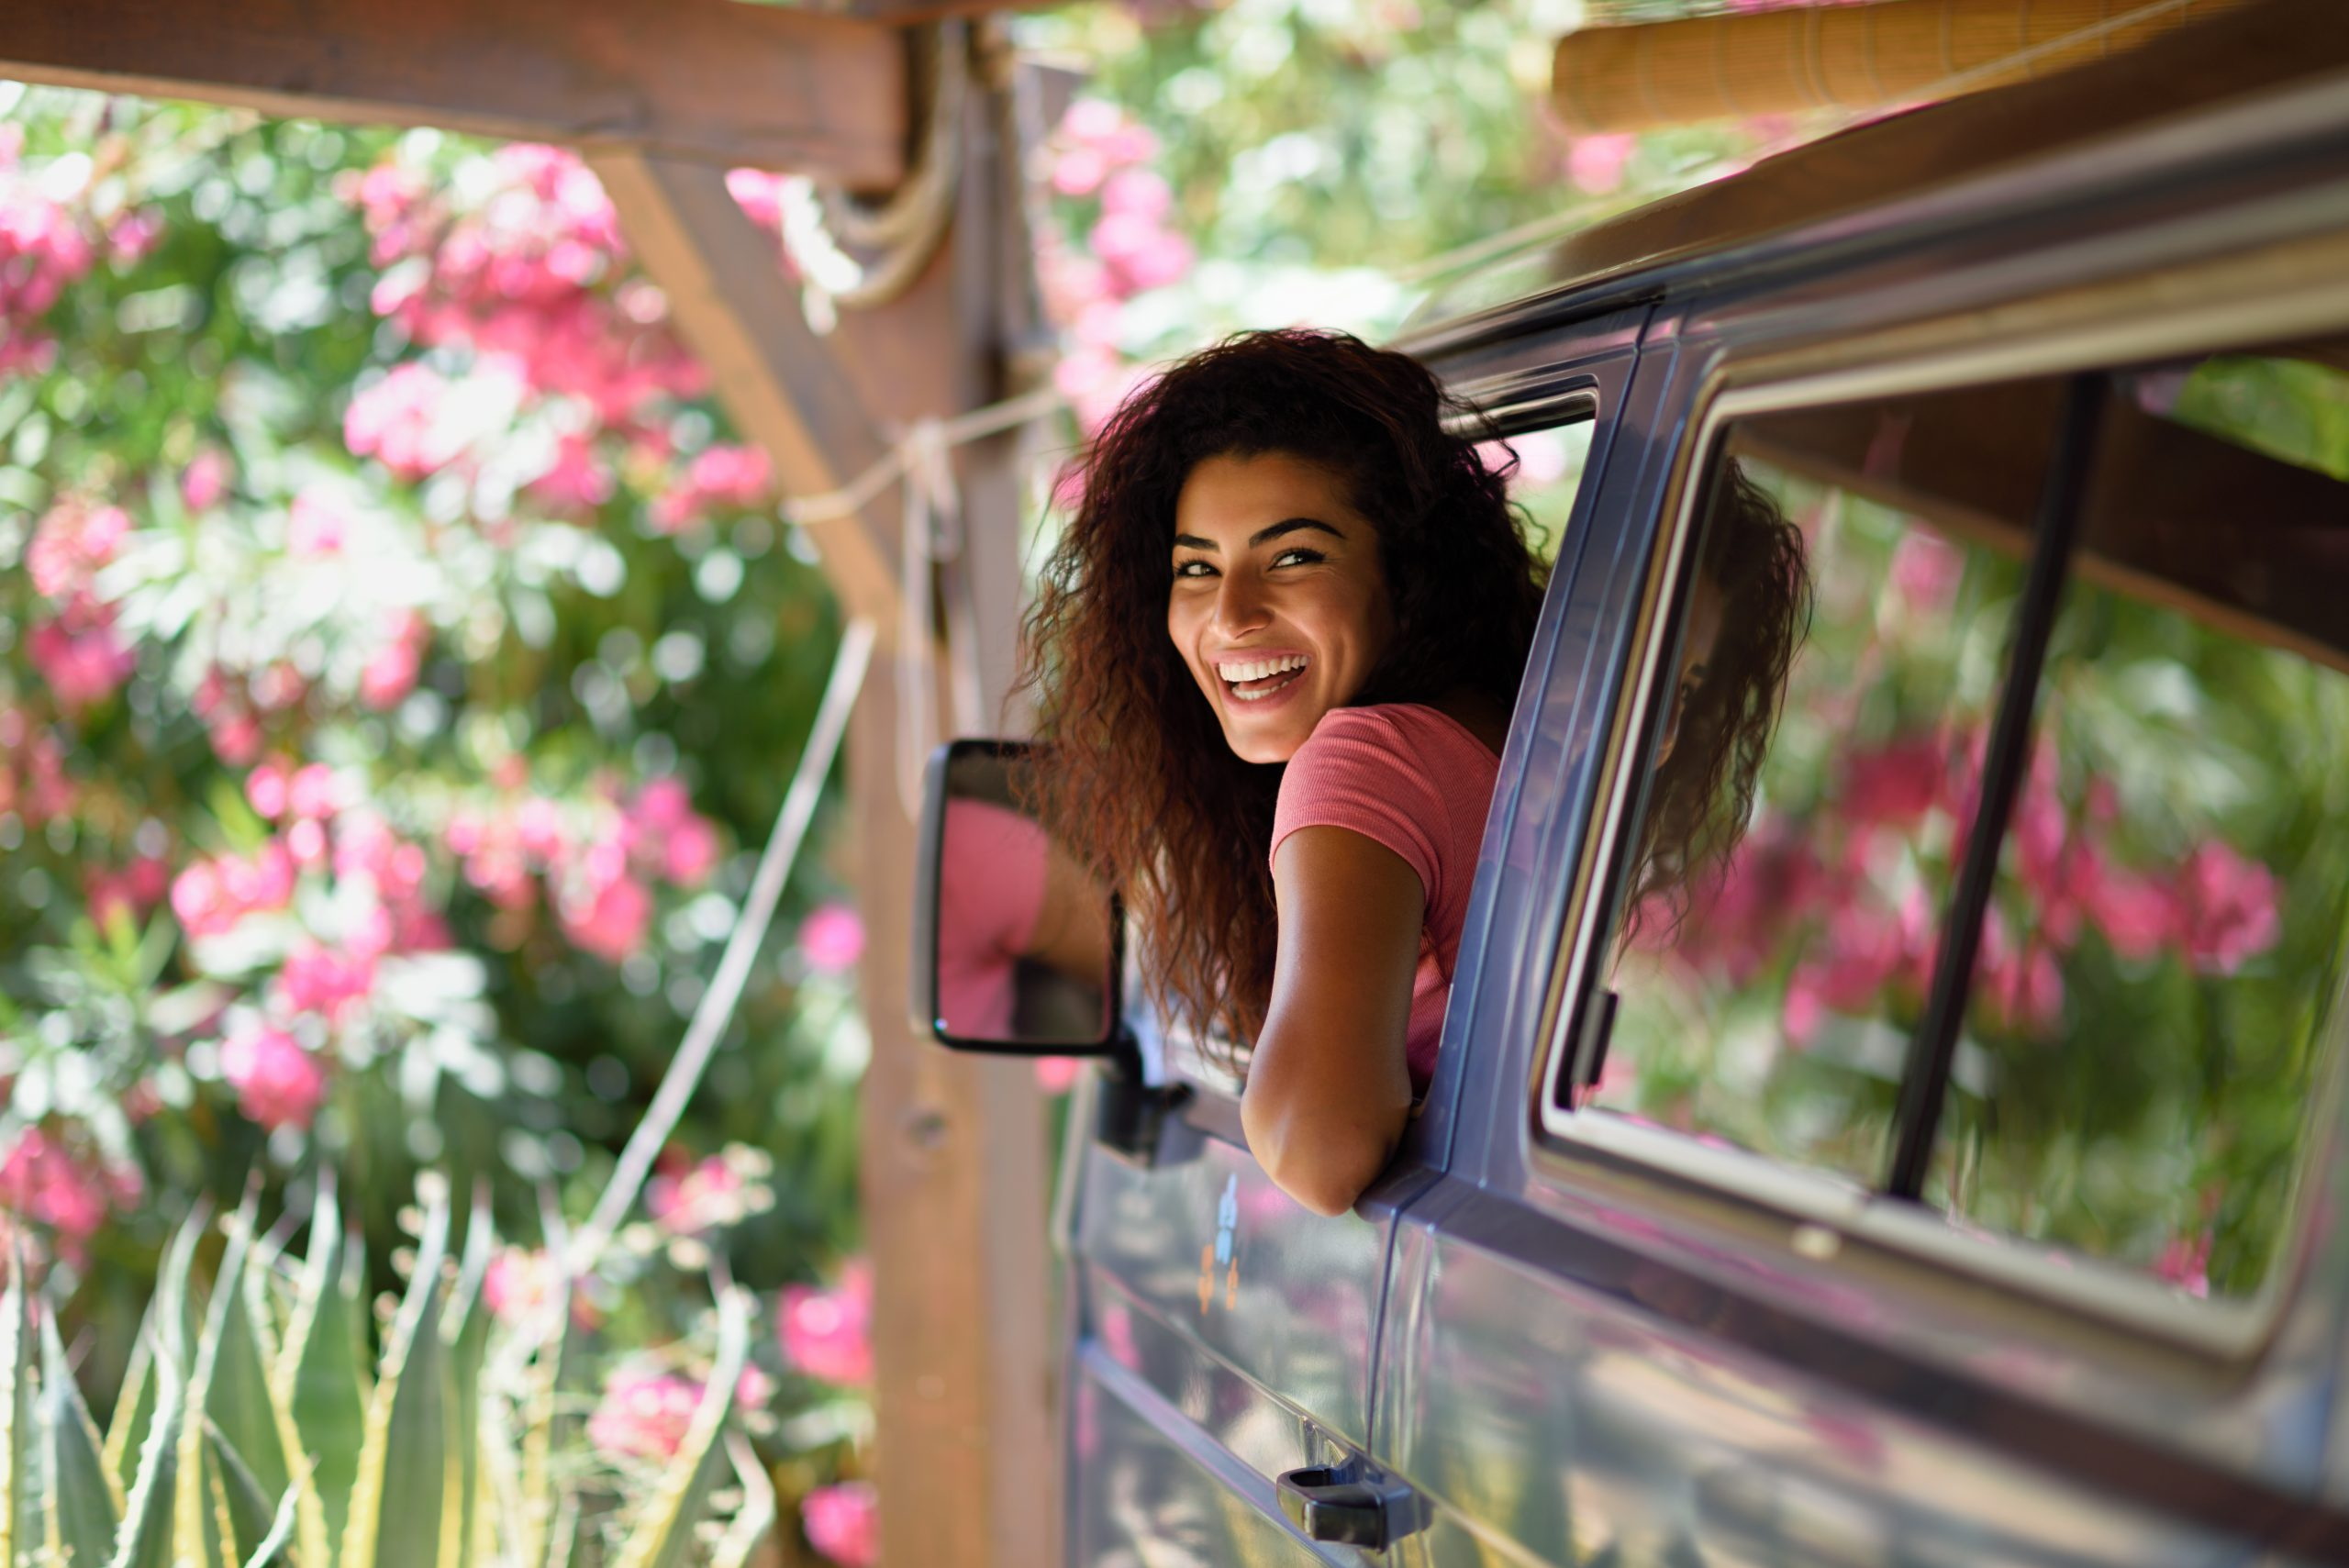 Young woman in a camper van enjoying spring time in a beautiful camping with pink flowers.